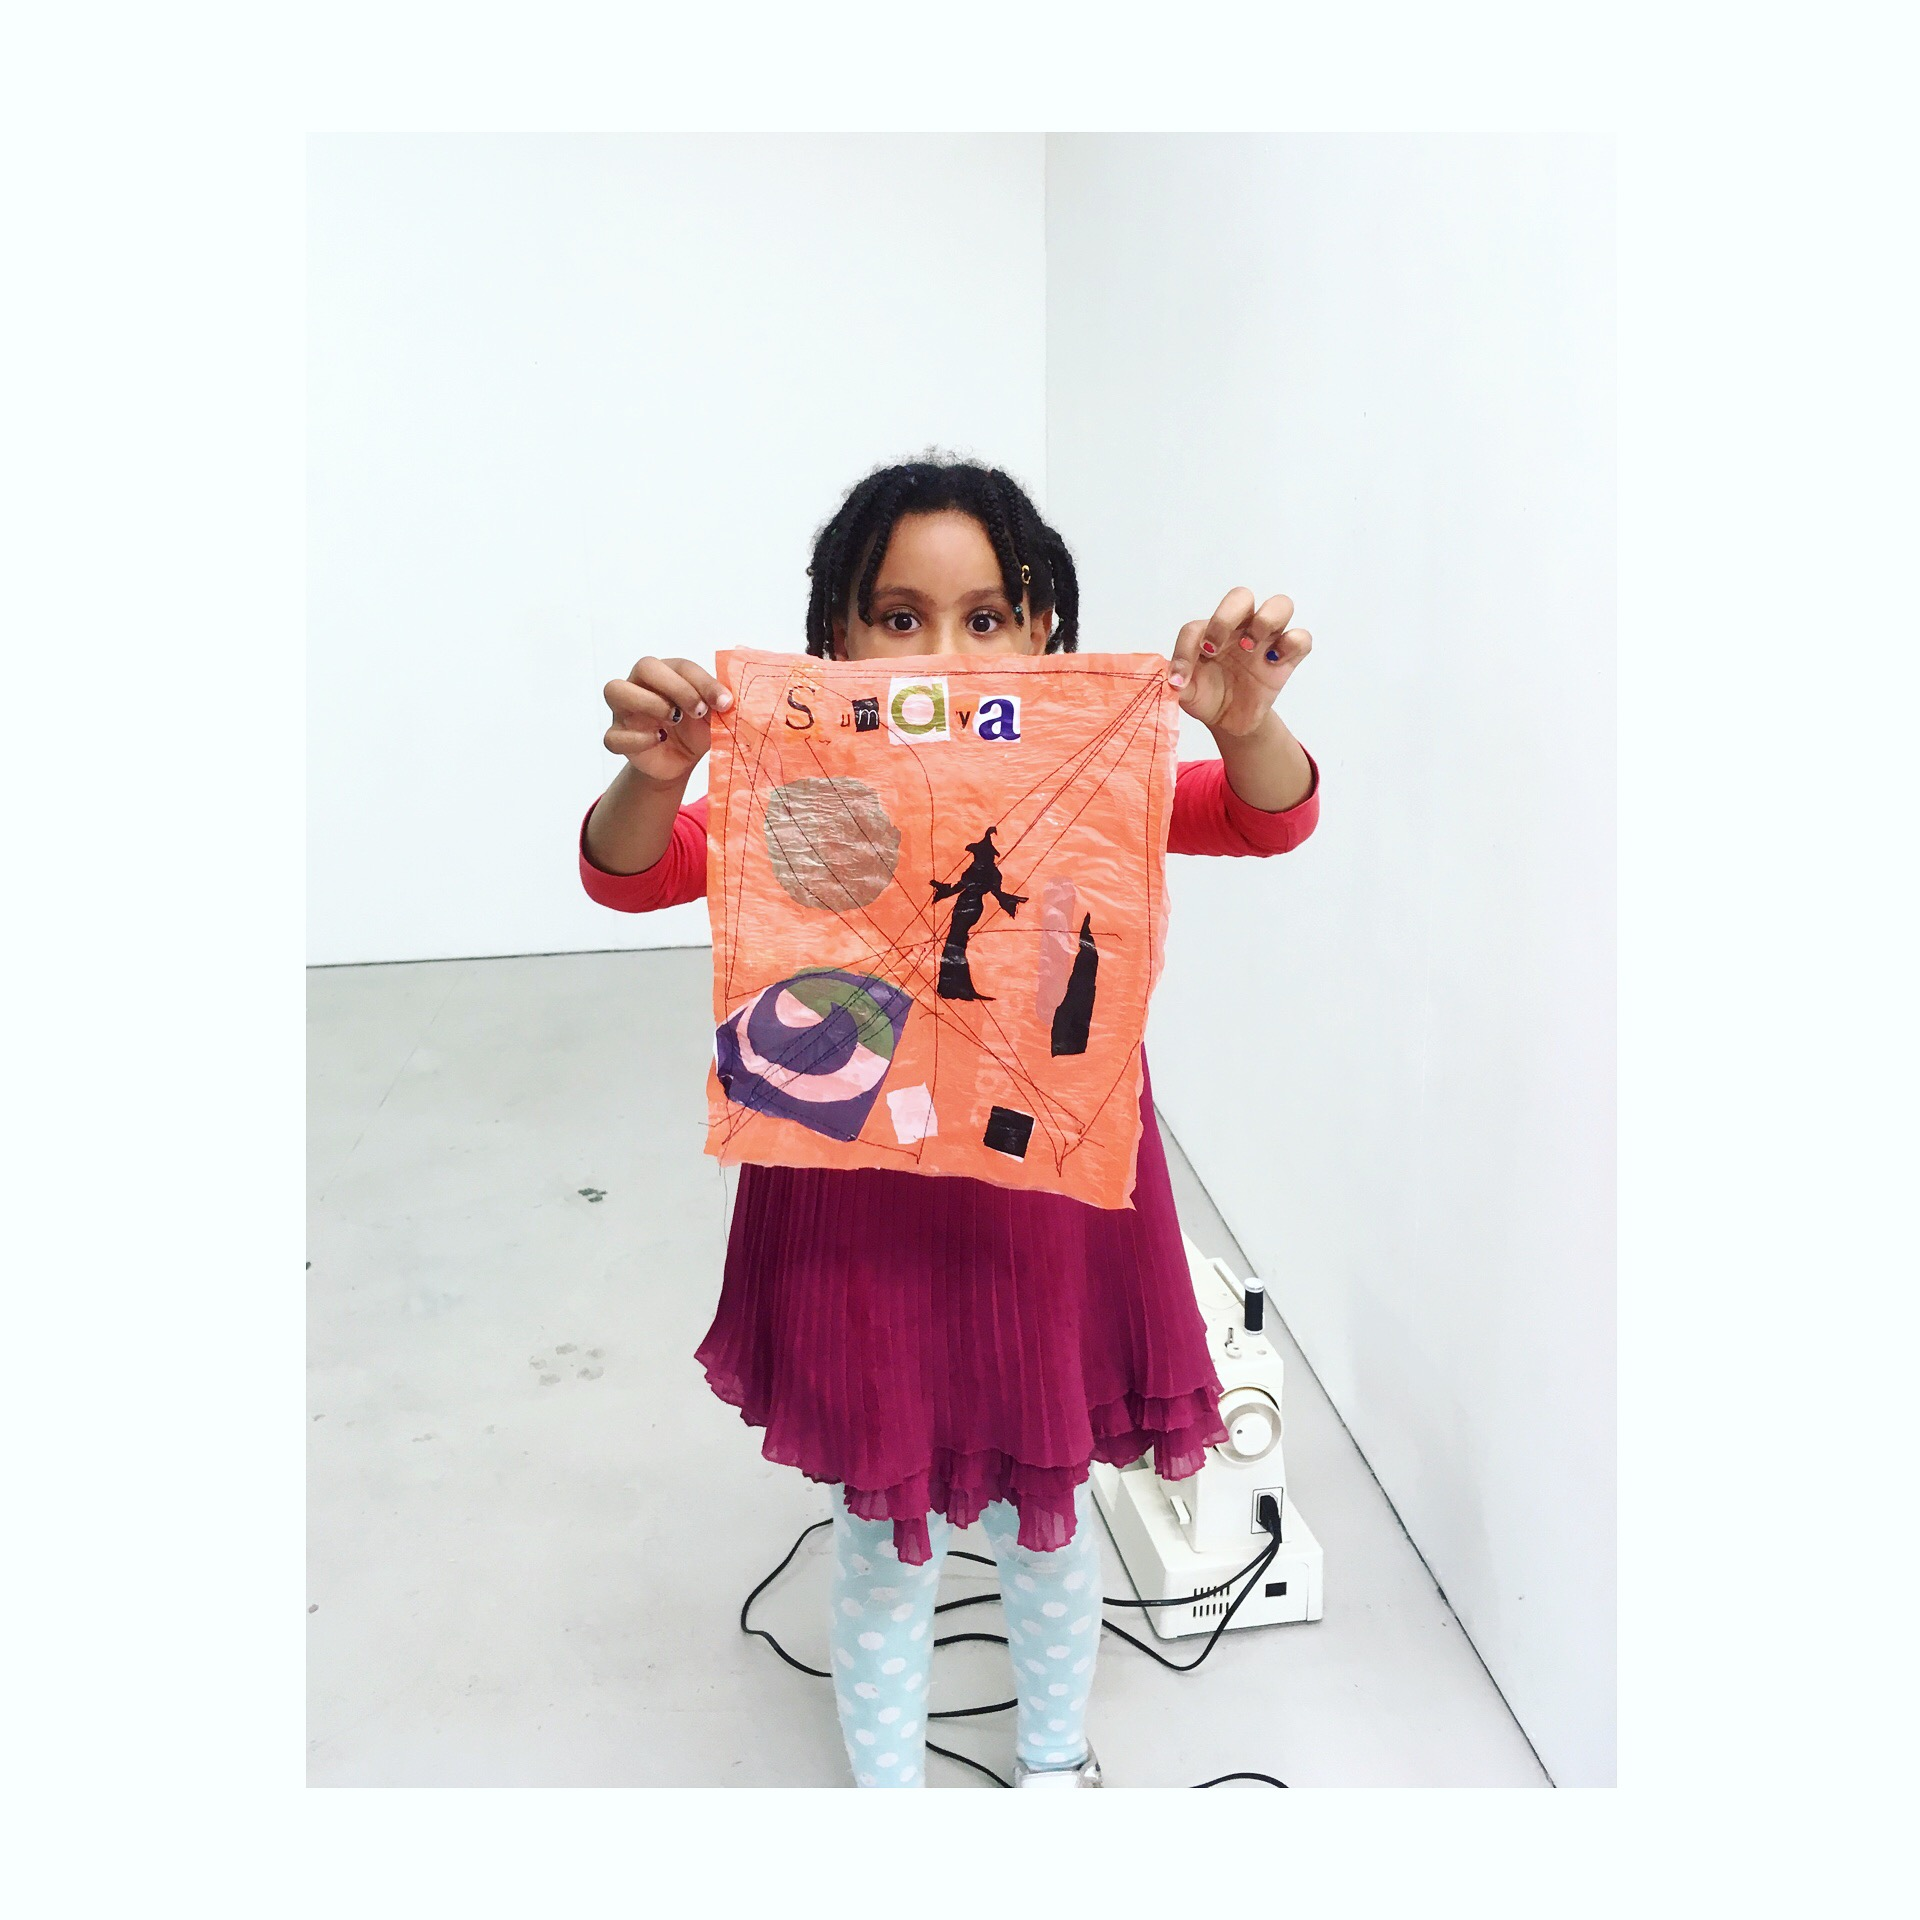 """My intention is to take art outside of the """"white cube"""" space, engaging with the local community including those who would not normally go to an art gallery. Through these workshops I seek opportunities to engage the community in art as activism."""